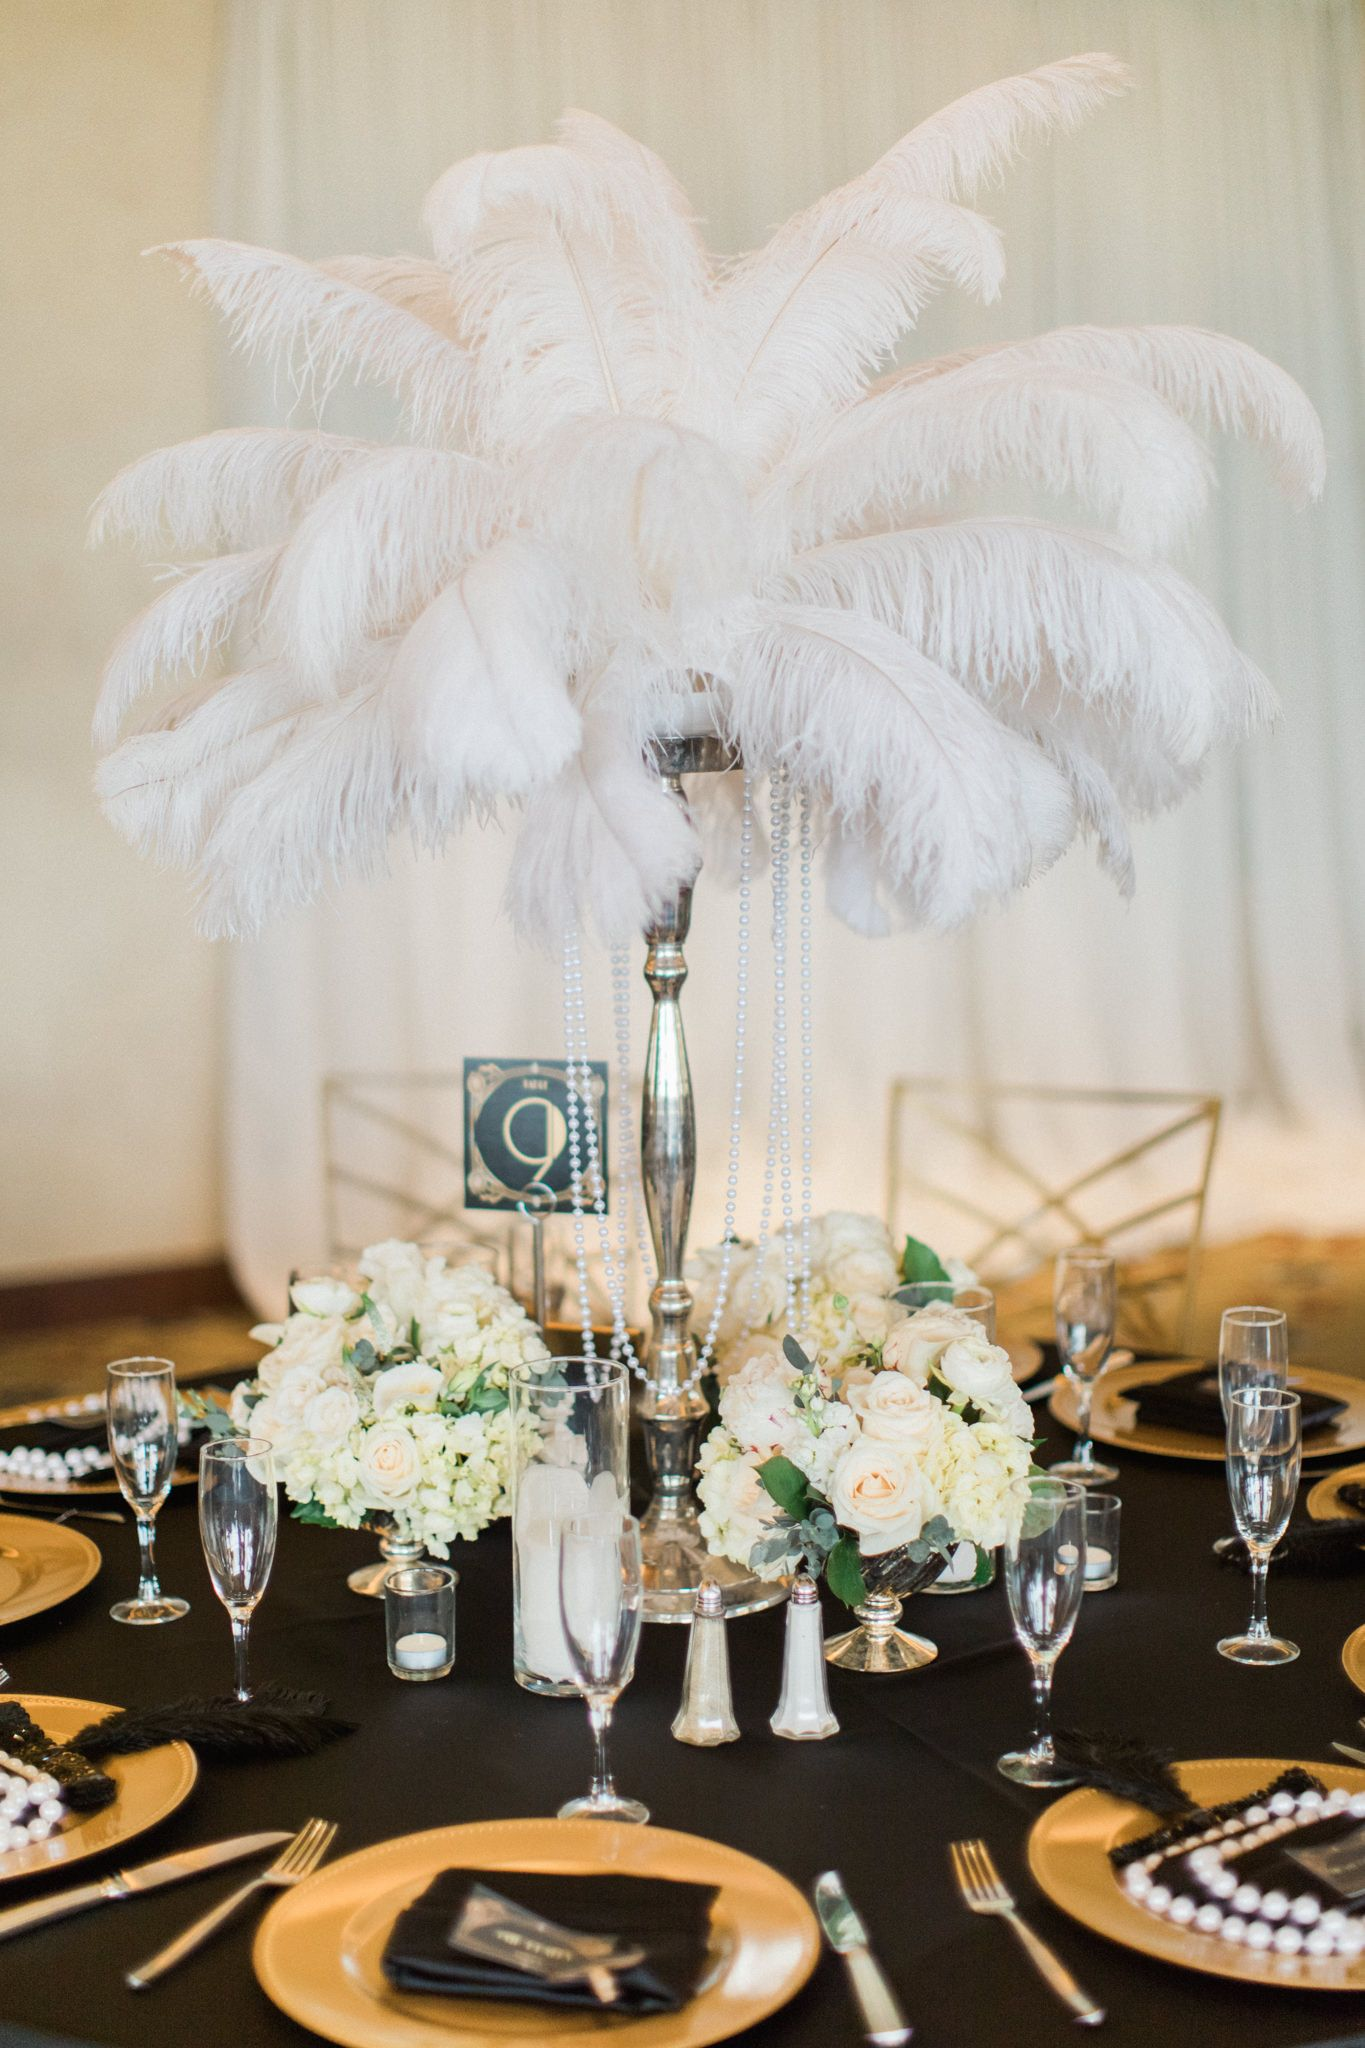 Tall centerpieces of feathers draped with pearls surrounded with ...